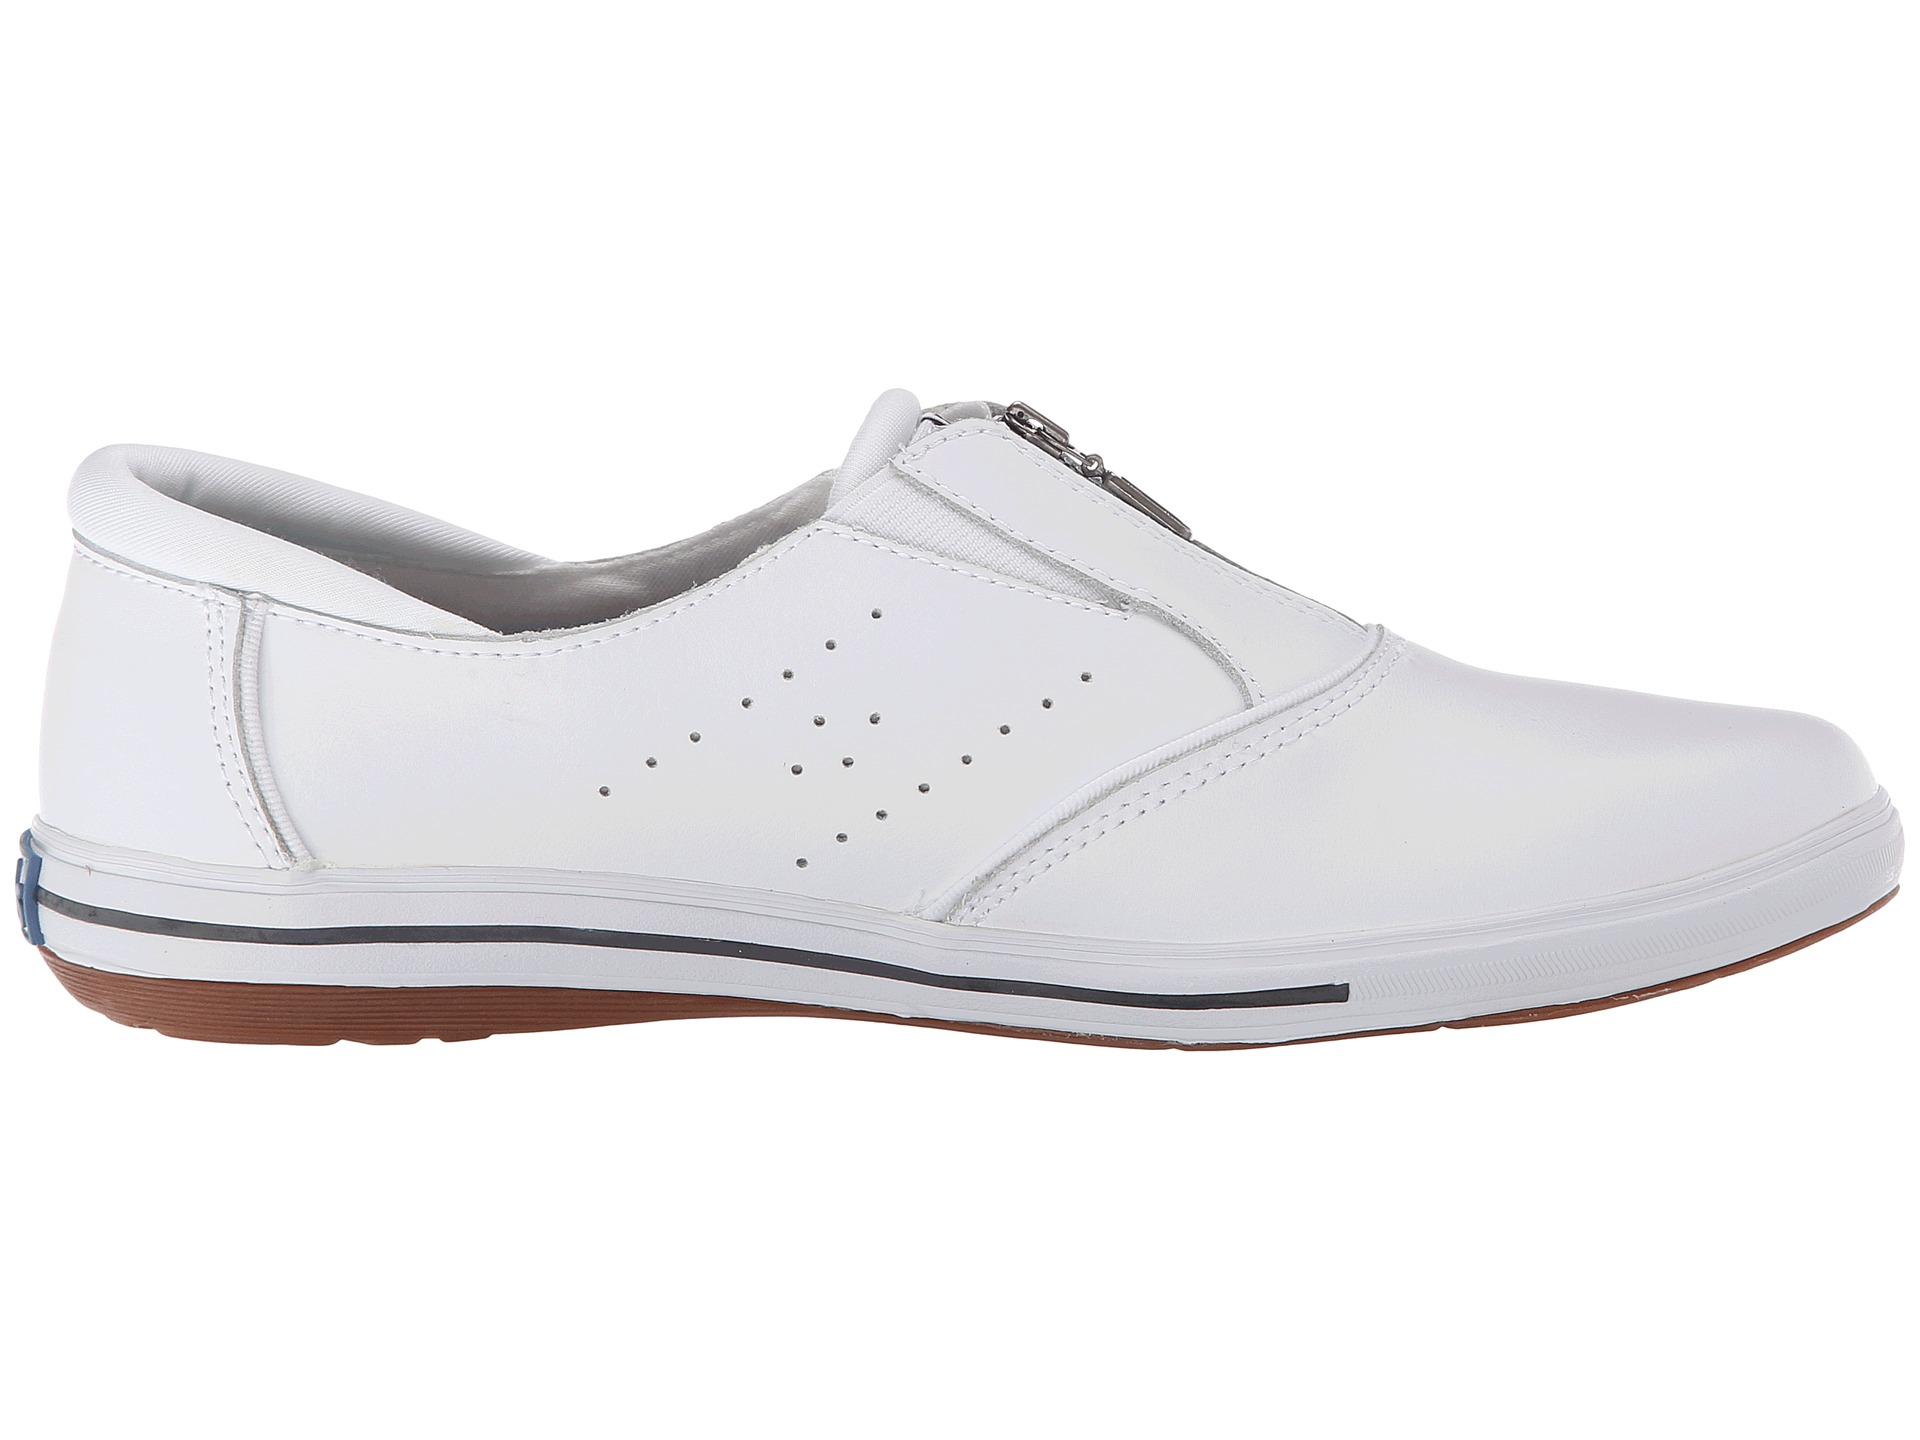 Lyst keds pacey zip smooth leather in white jpg 1920x1440 Keds shoes nike b033dee58